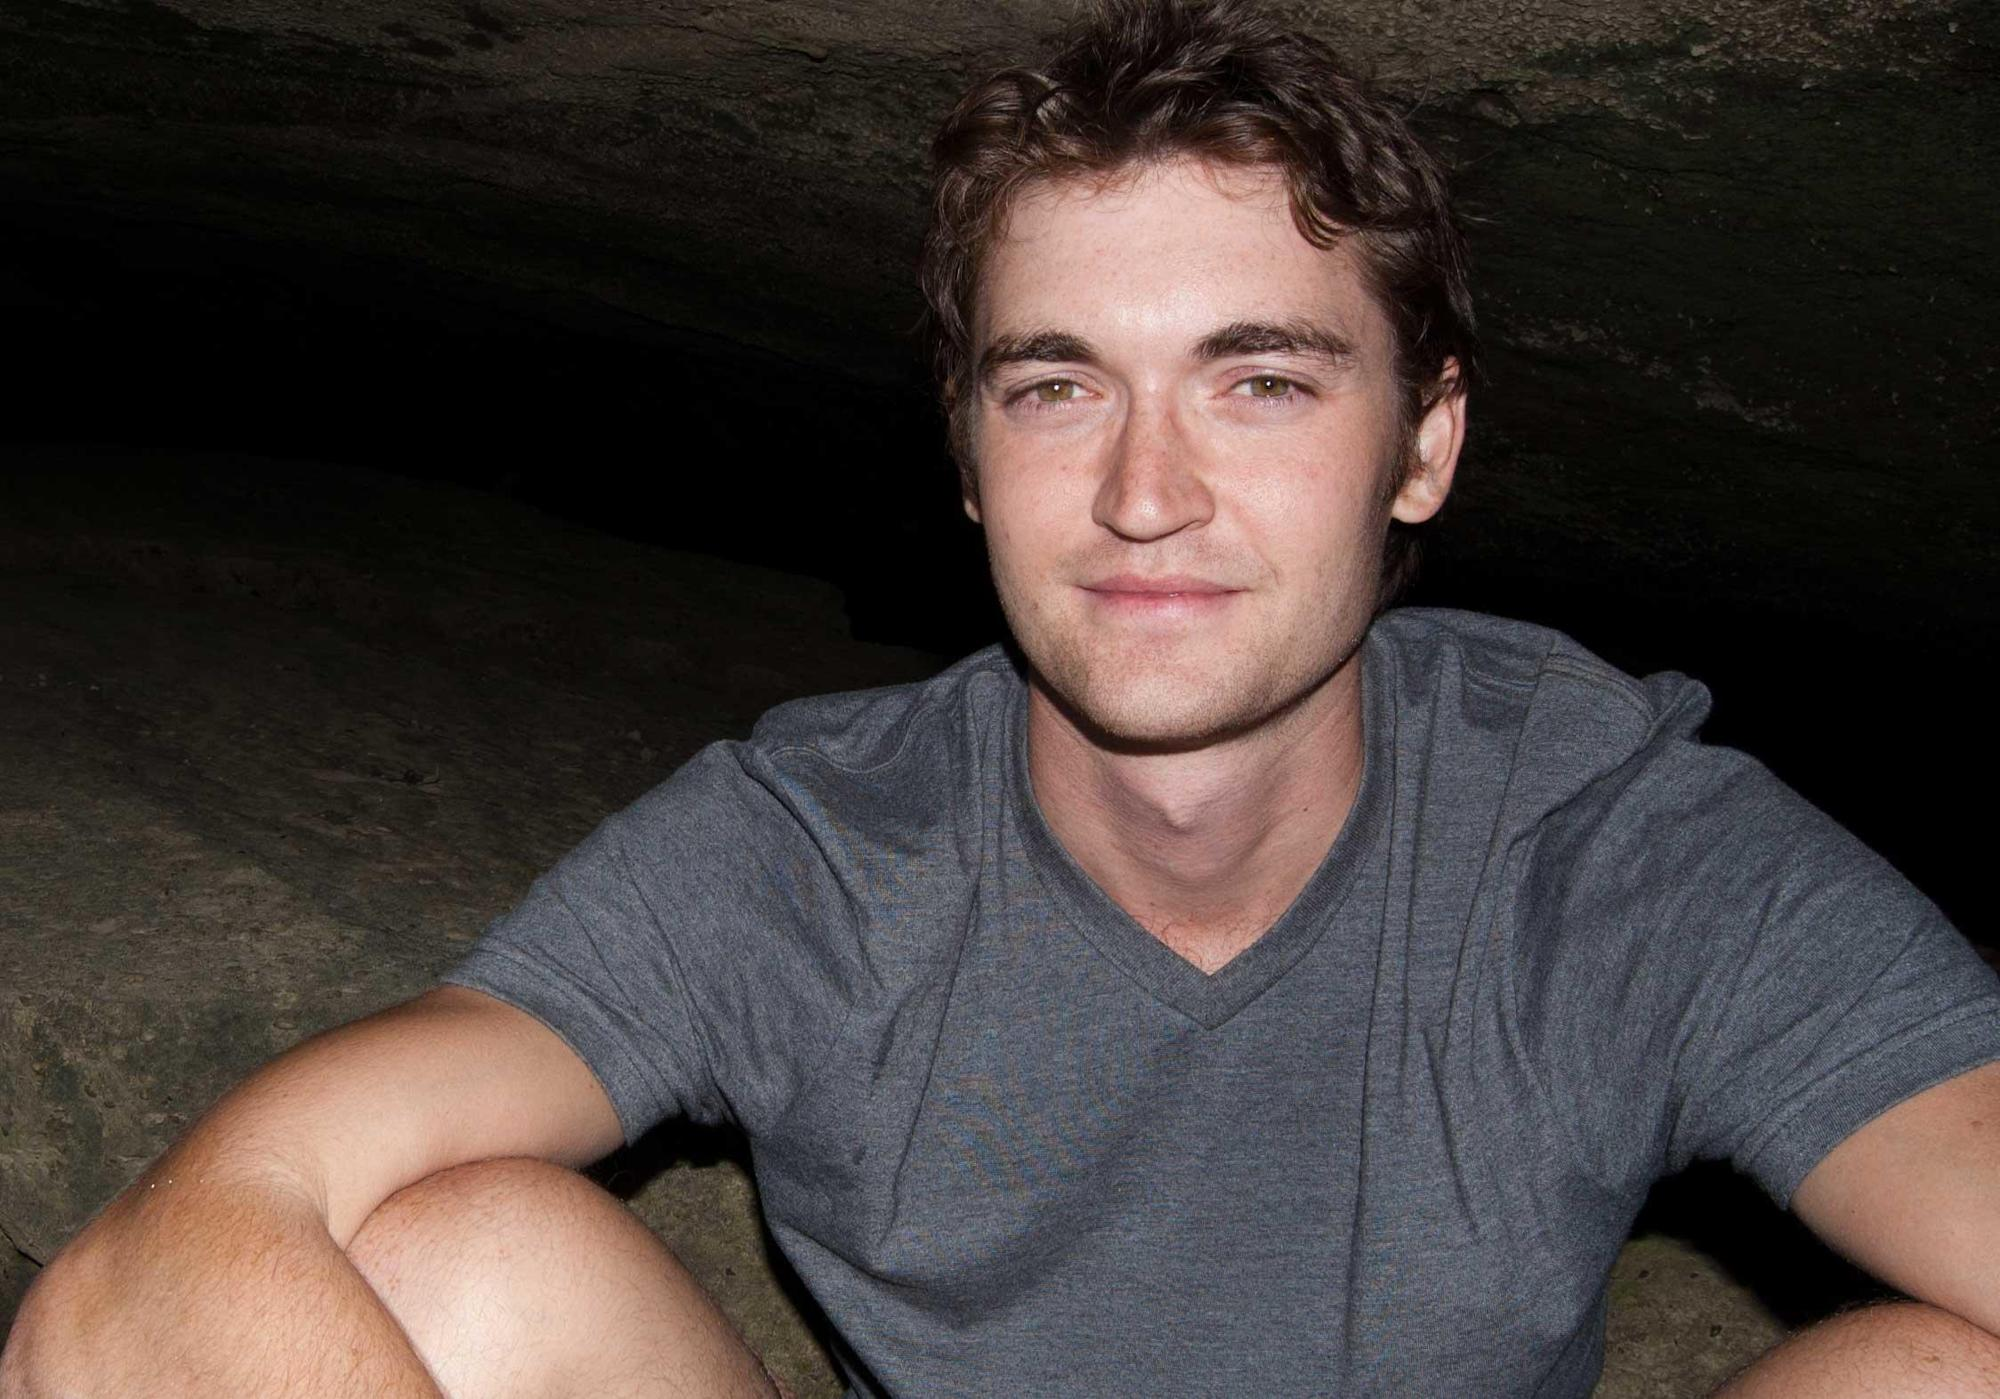 Inside the FBI's search for the dark web kingpin of Silk Road